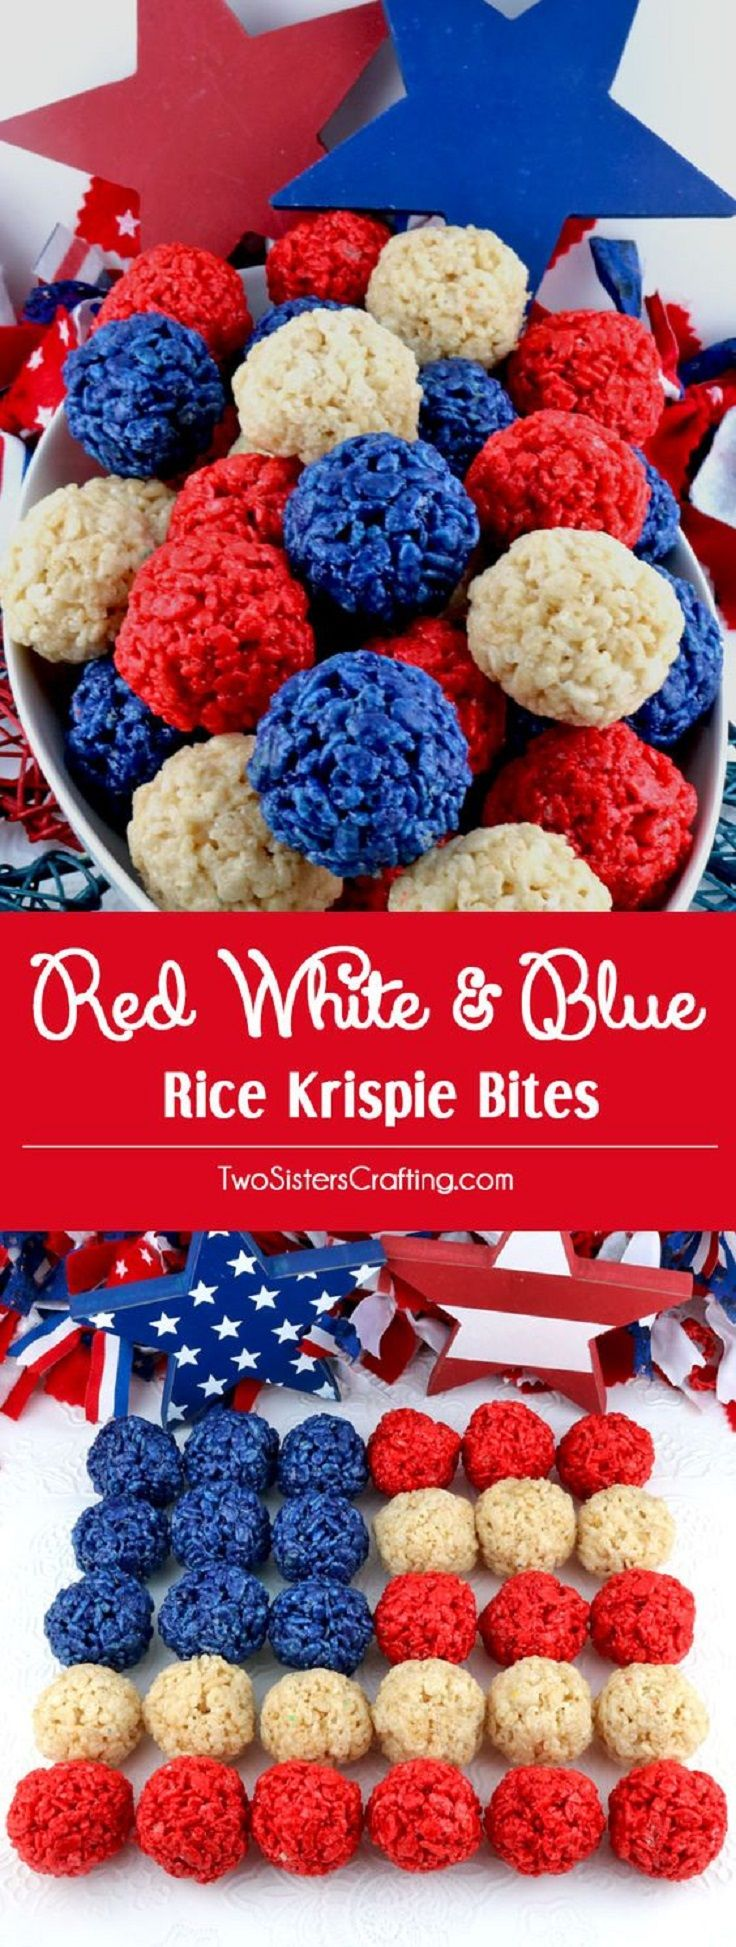 Red White and Blue Rice Krispie Bites - 18 All-American 4th of July Food List to Celebrate Our Nation's Birthday